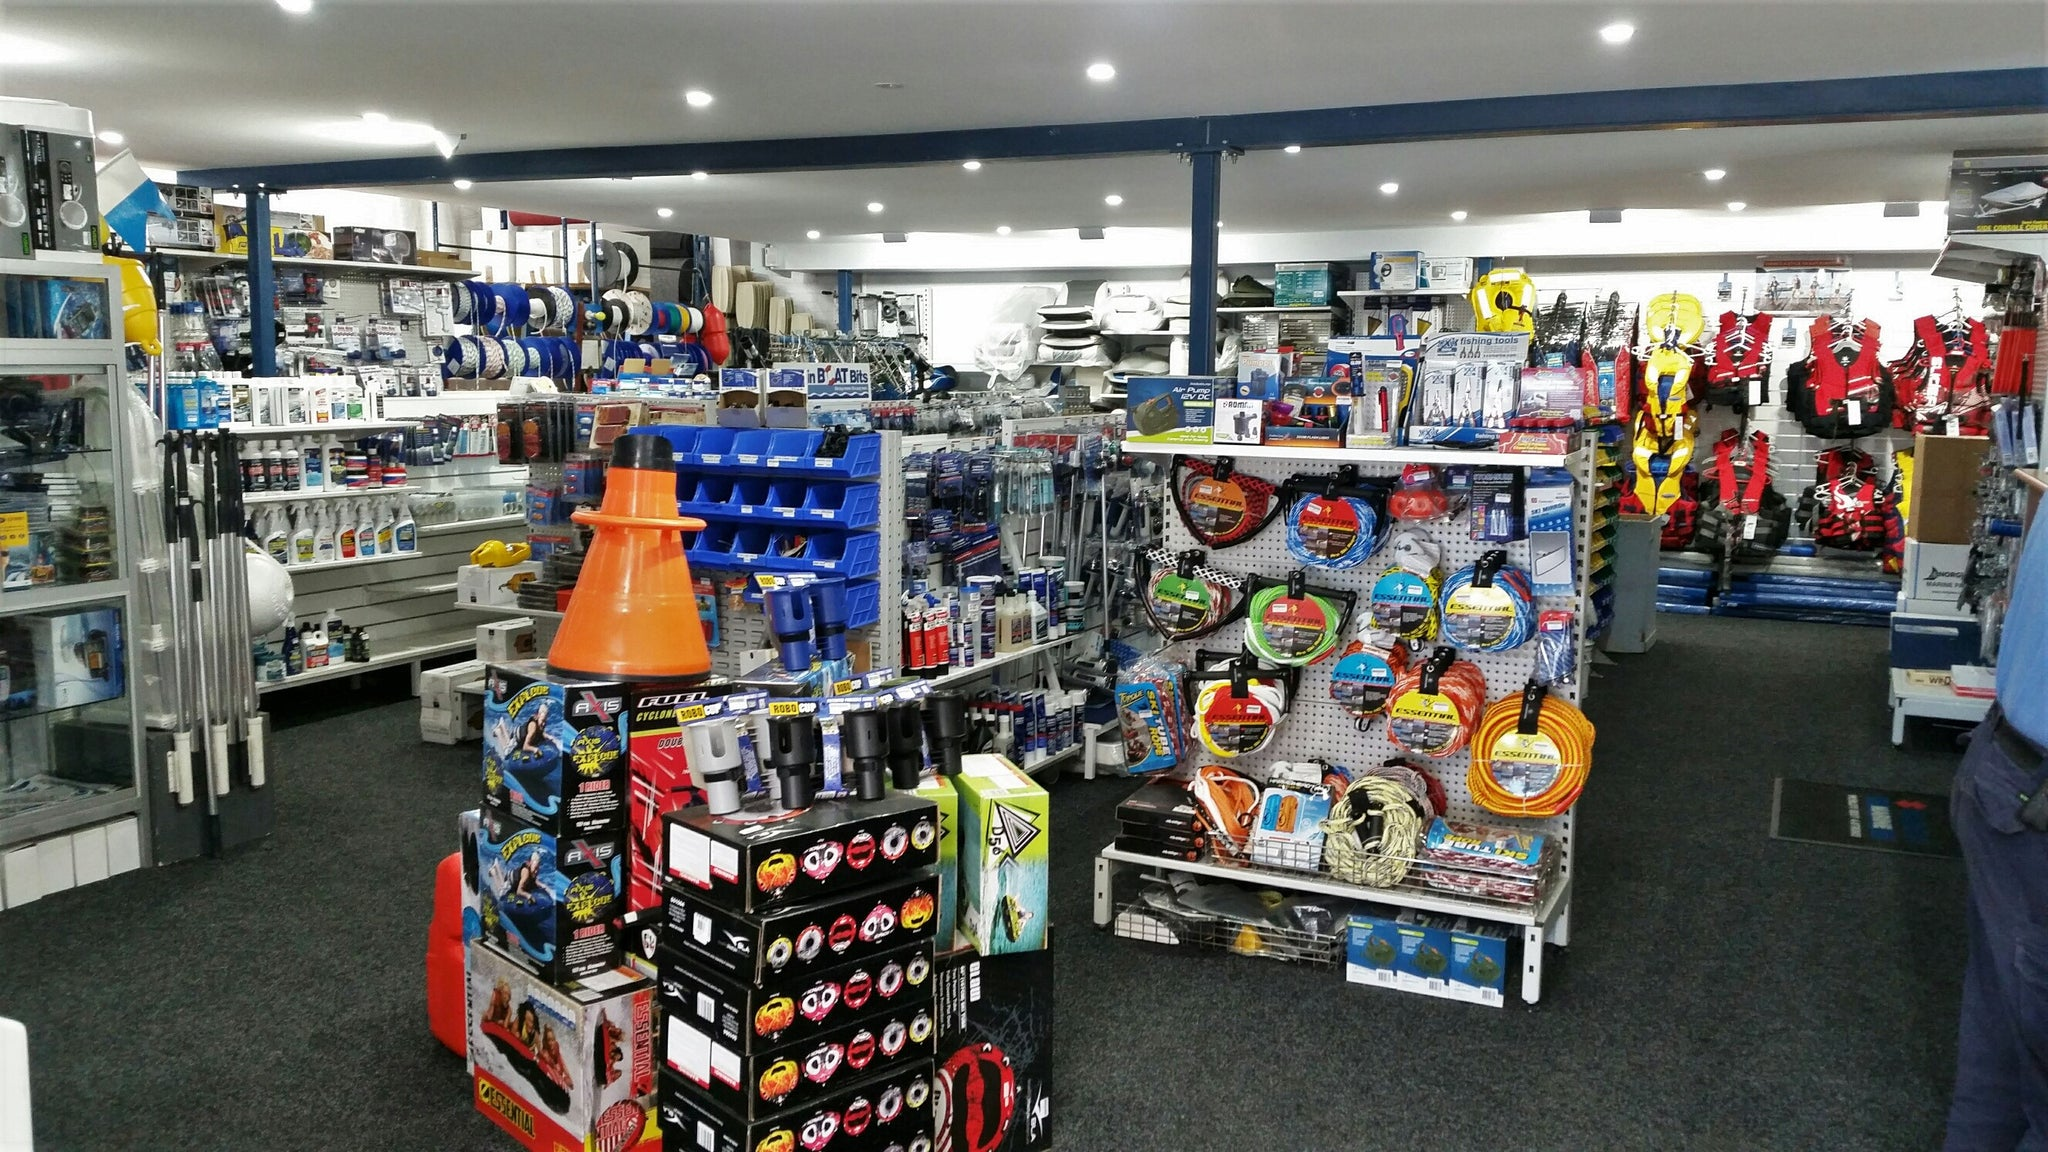 Hunts Marine's Sydney boat accessories department has moved!